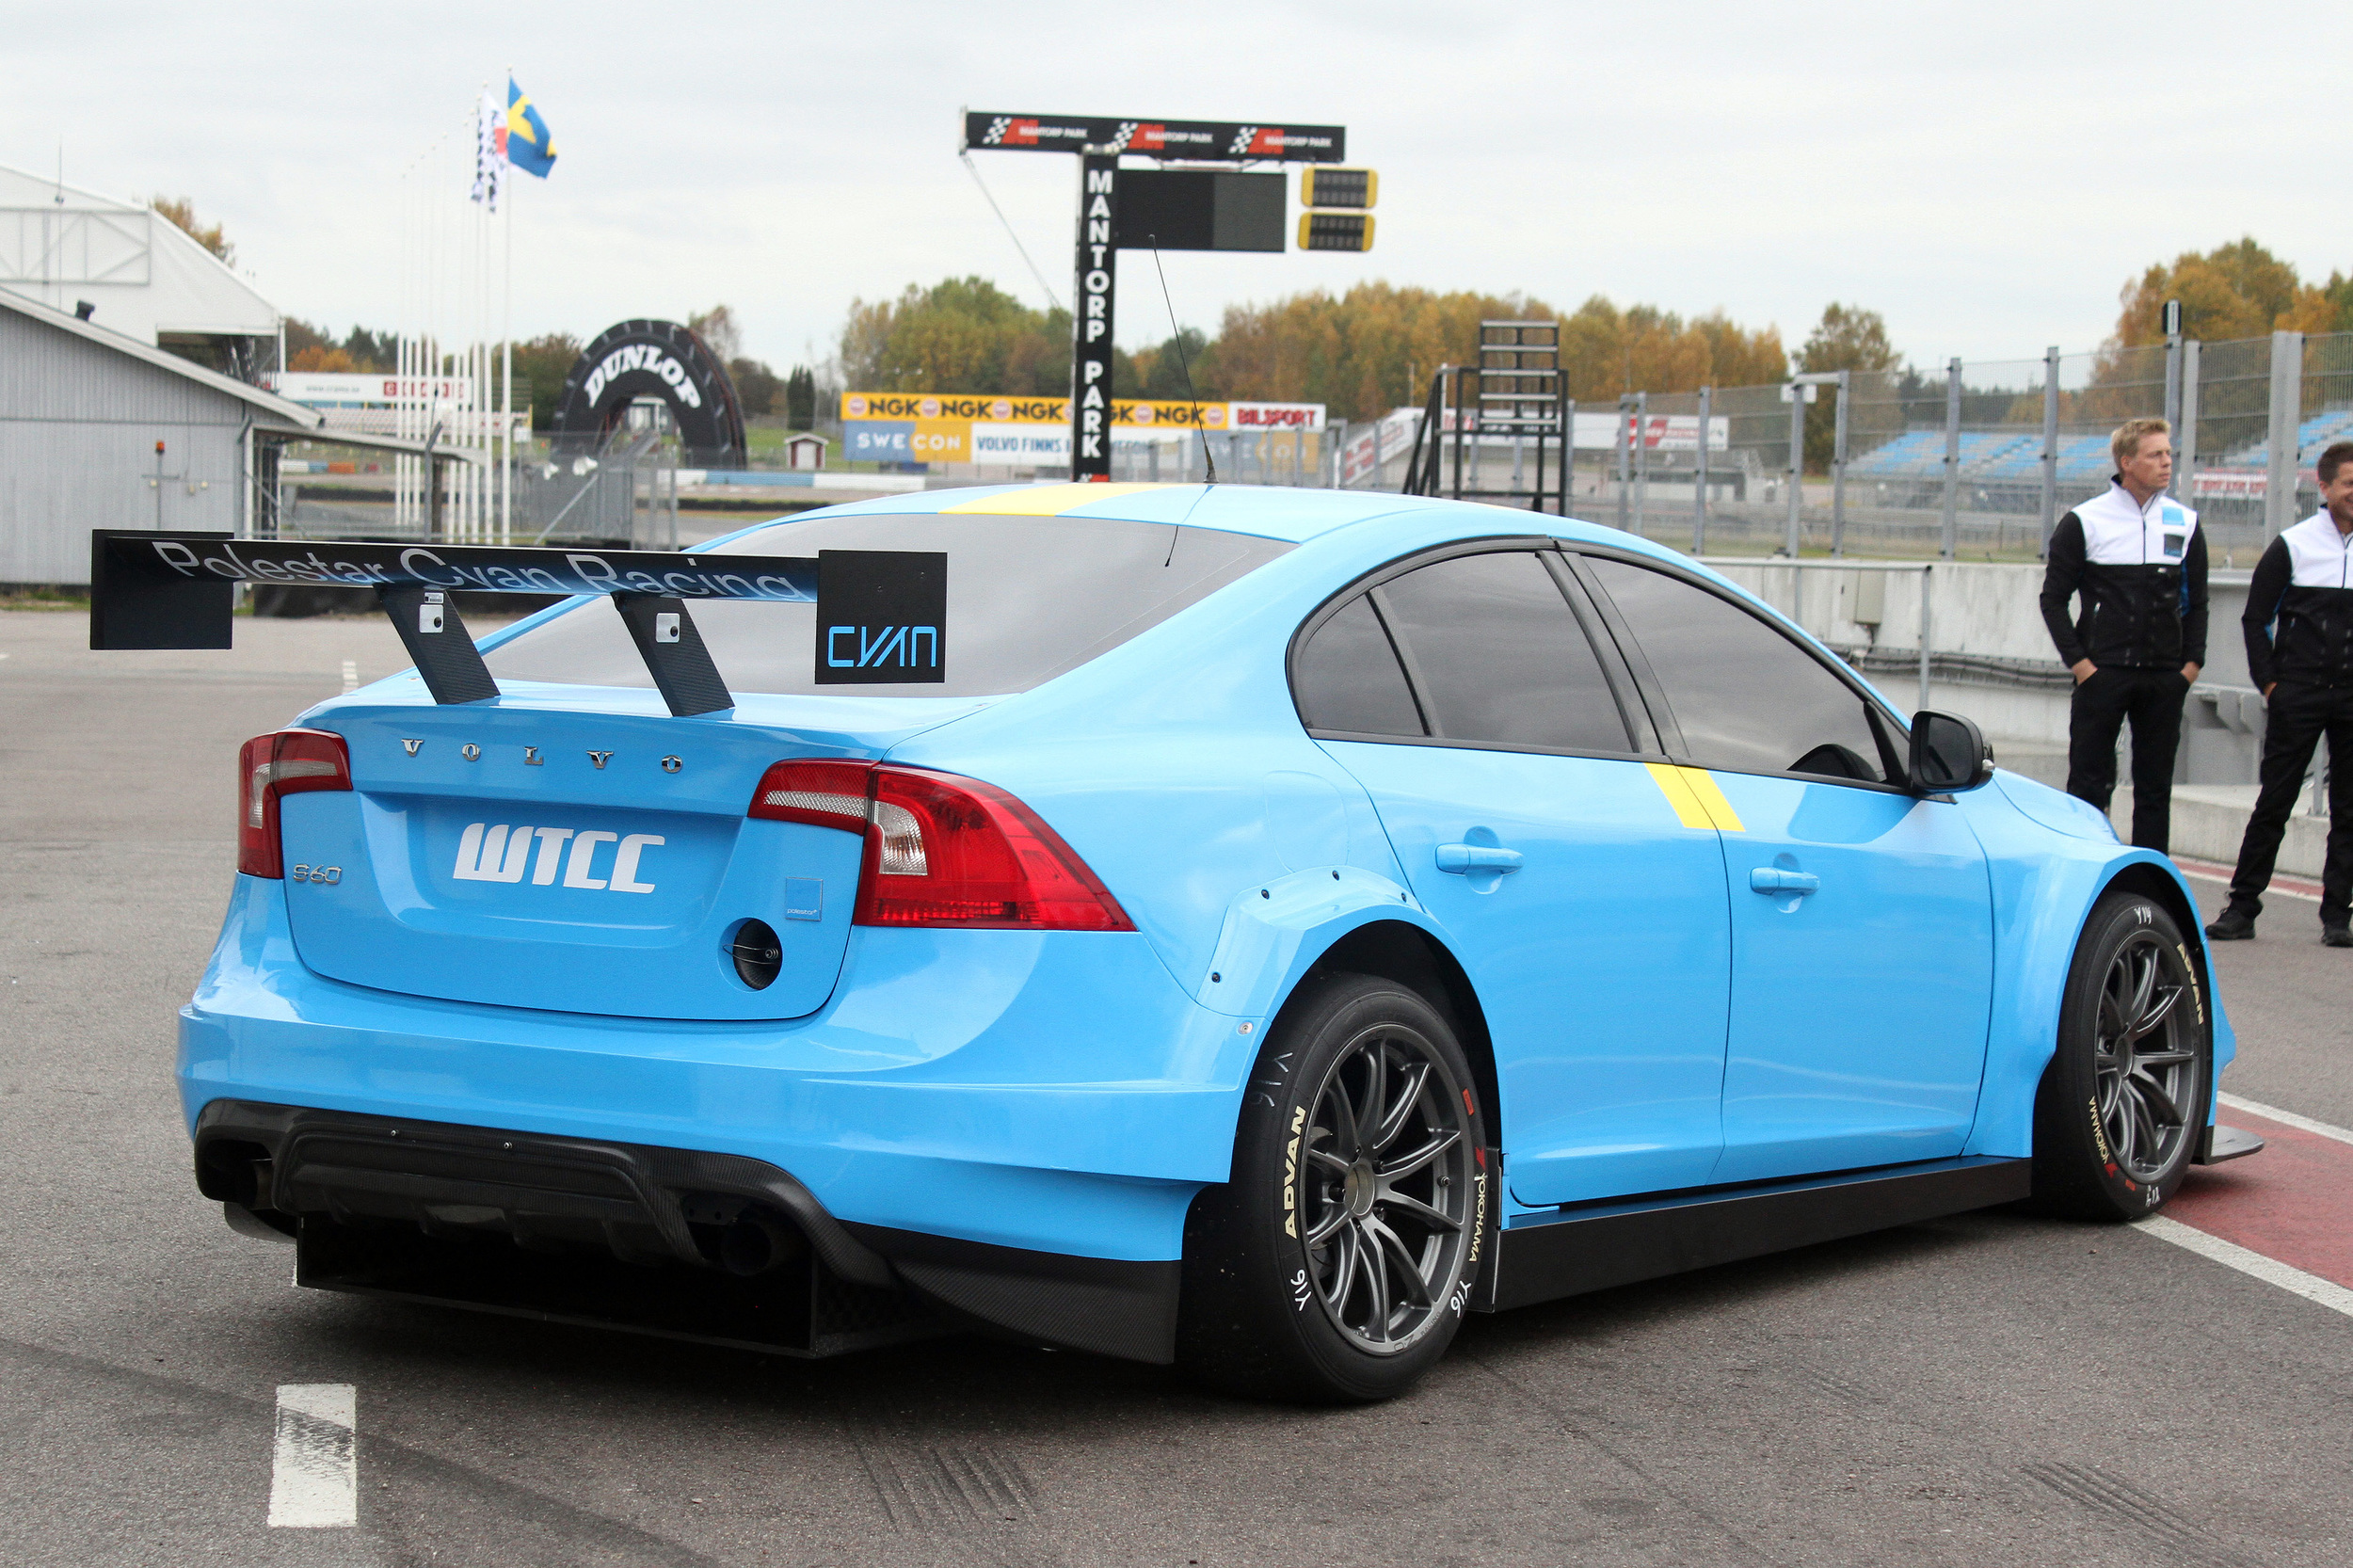 why is volvo racing and why is that important for us